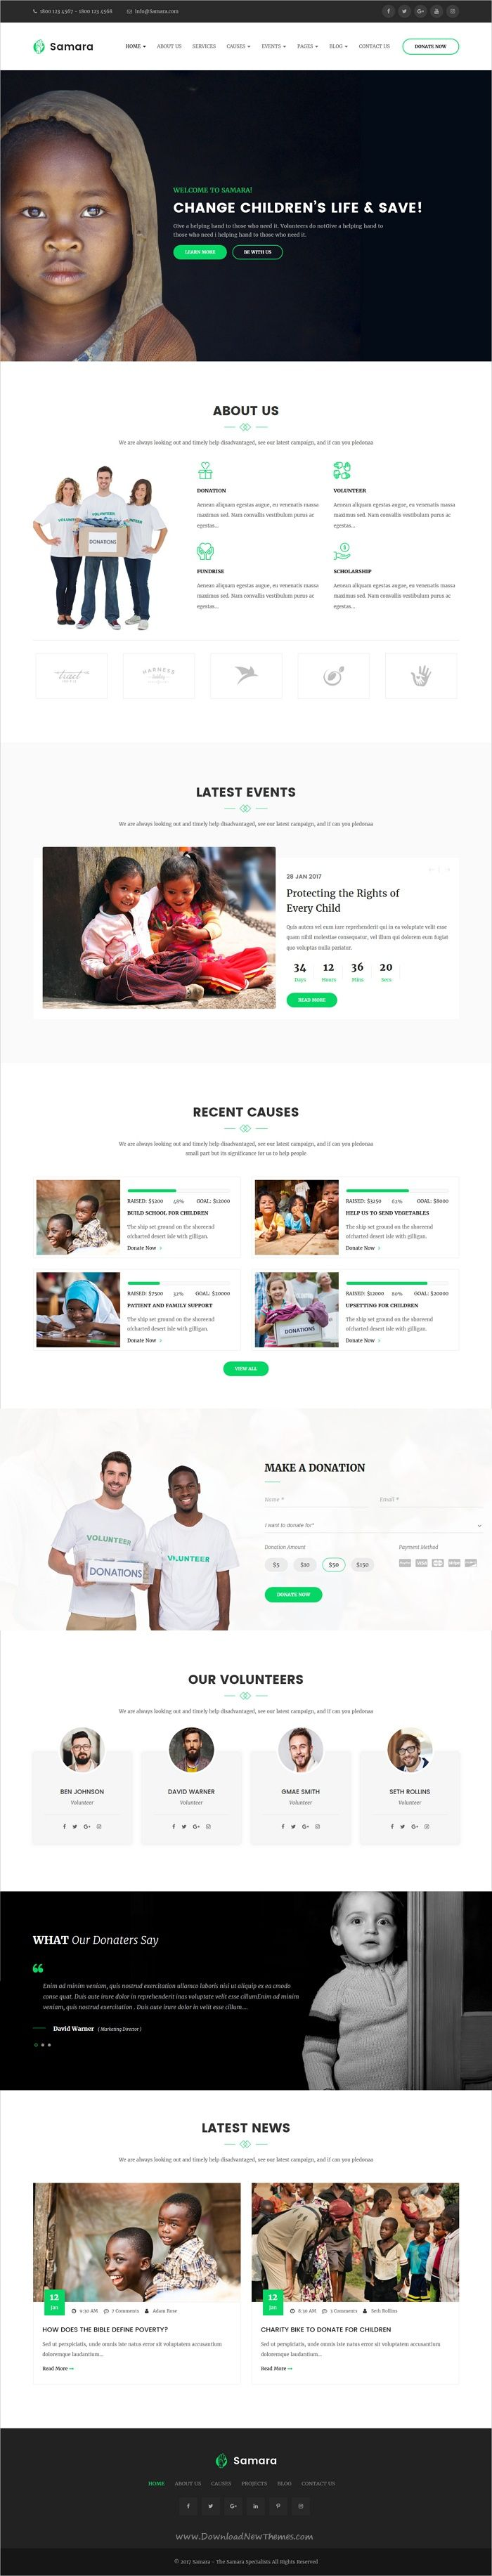 Samara is clean and modern design 3in1 responsive #HTML bootstrap template for #charity and #nonprofit organization website download now➩ https://themeforest.net/item/samara-responsive-html-template-for-charity-fund-raising/19767838?ref=Datasata